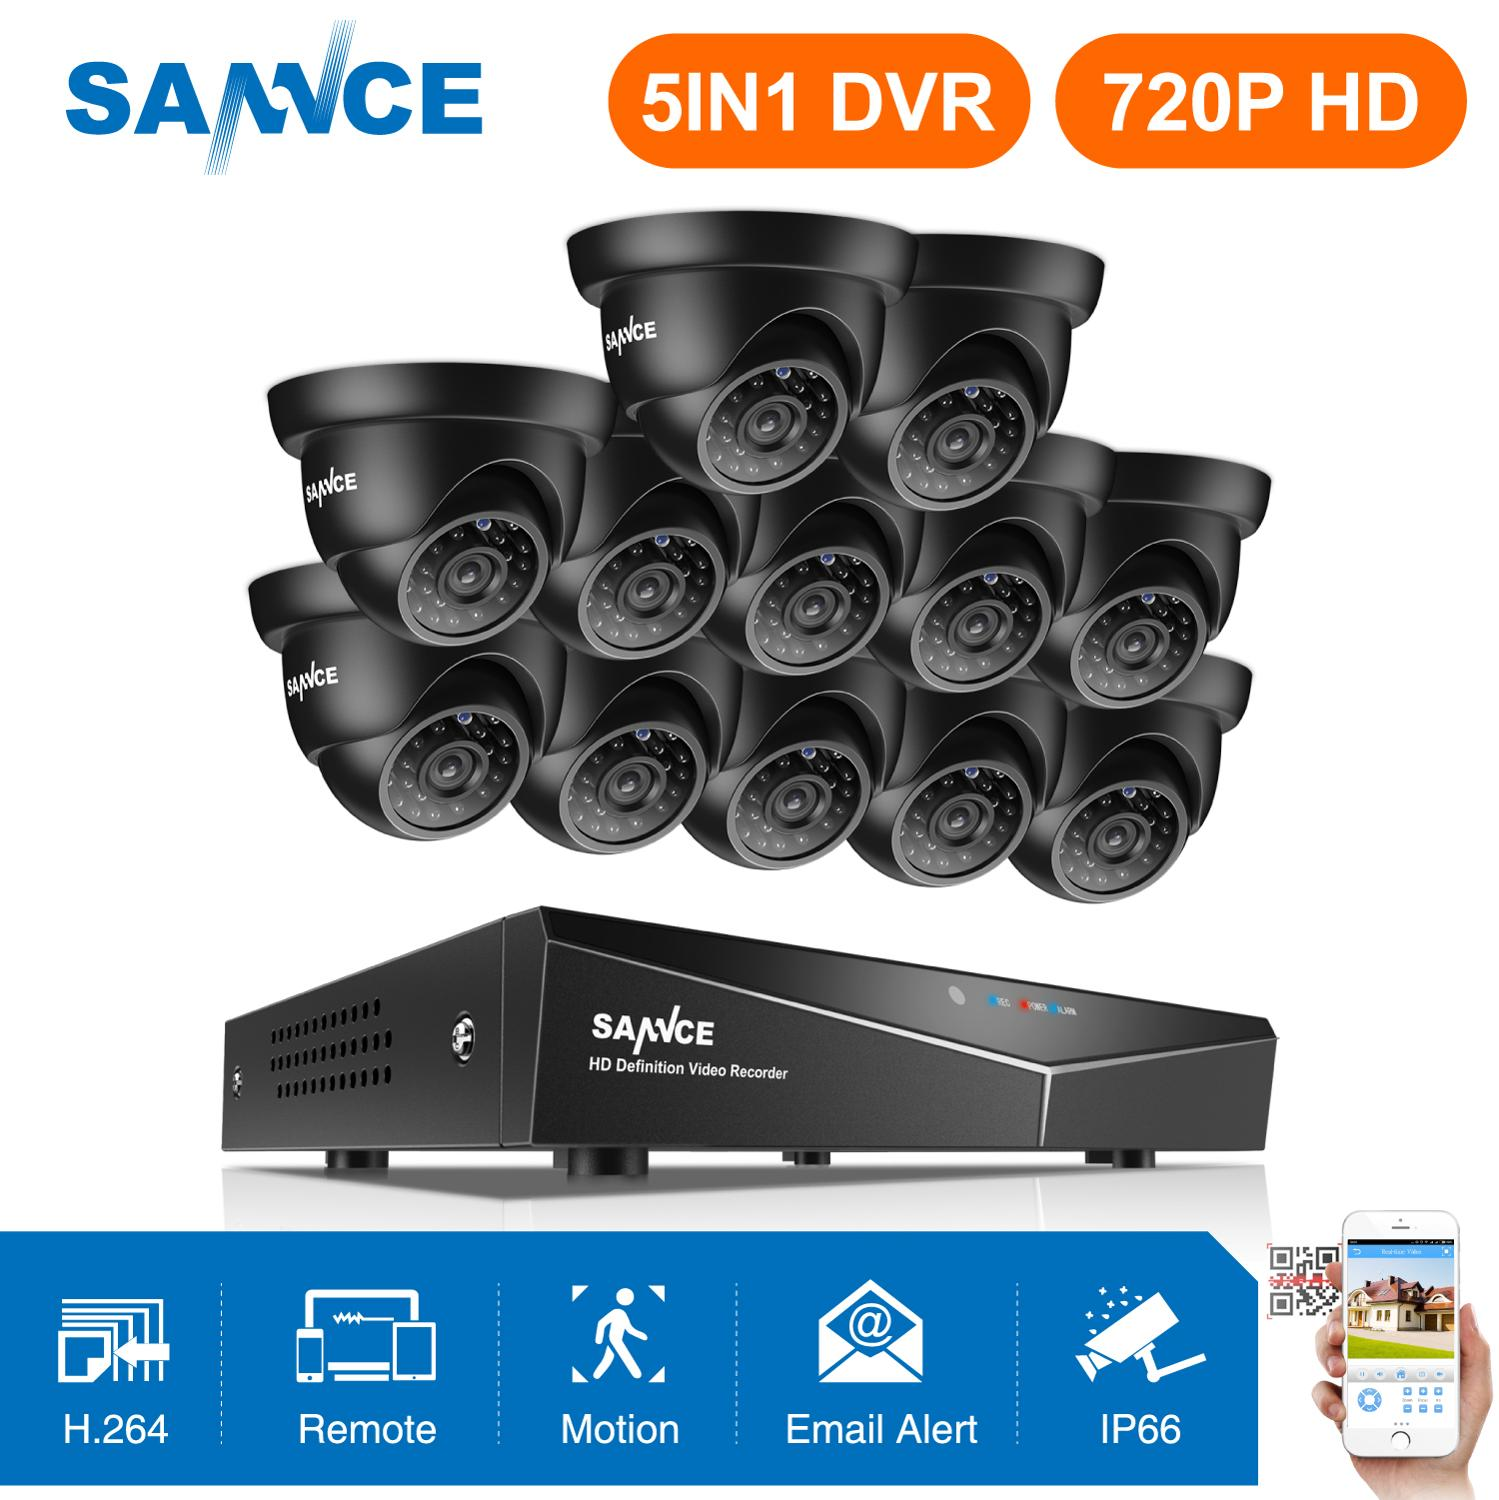 SANNCE 16CH 1080N Home Video Security System 5IN1 DVR HDMI With 12X 720P Outdoor Weatherproof TVI Smart IR Dome Camera CCTV KitSANNCE 16CH 1080N Home Video Security System 5IN1 DVR HDMI With 12X 720P Outdoor Weatherproof TVI Smart IR Dome Camera CCTV Kit